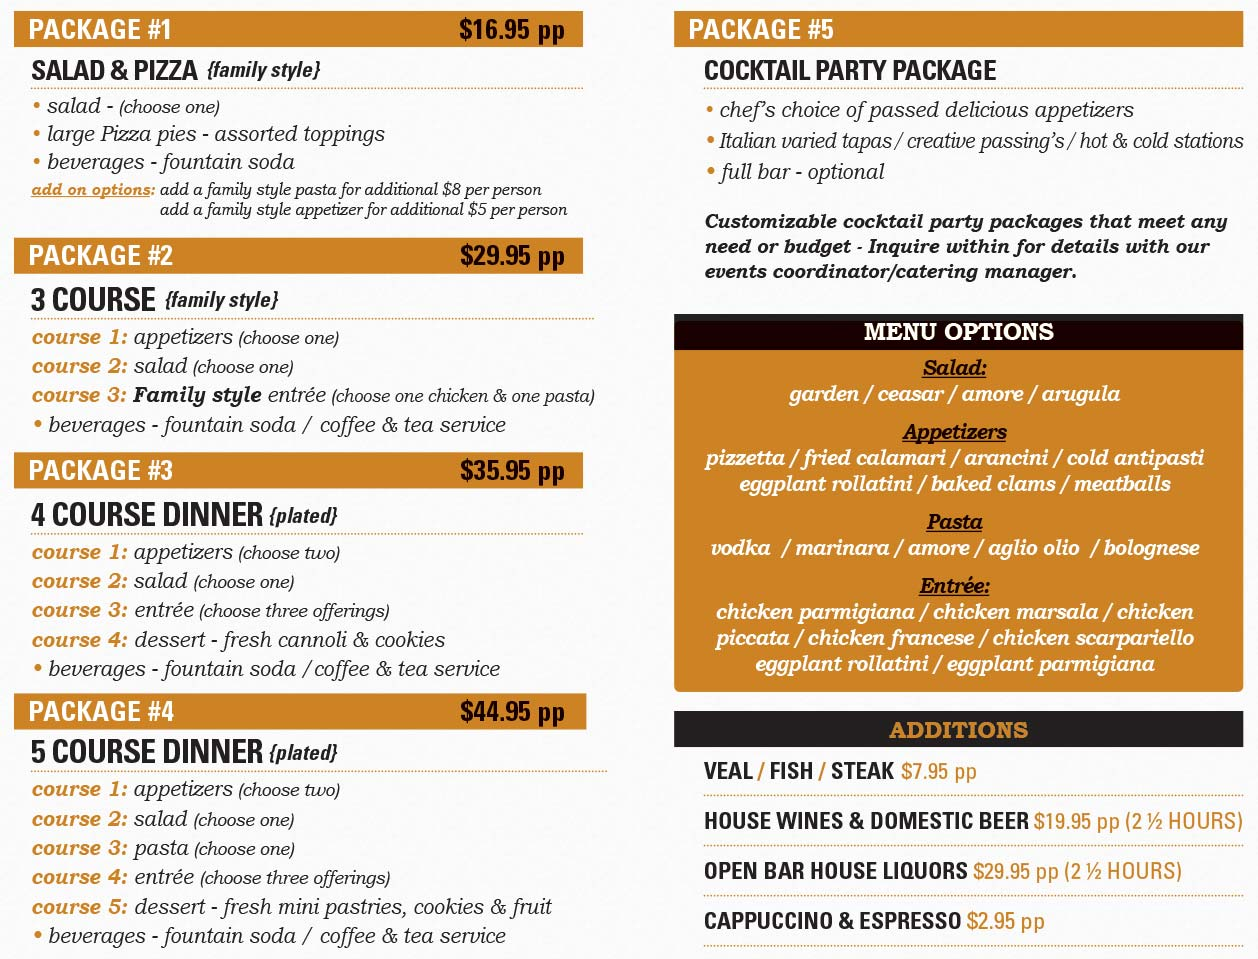 Amore Armonk In-House Events Catering Menu Page 2